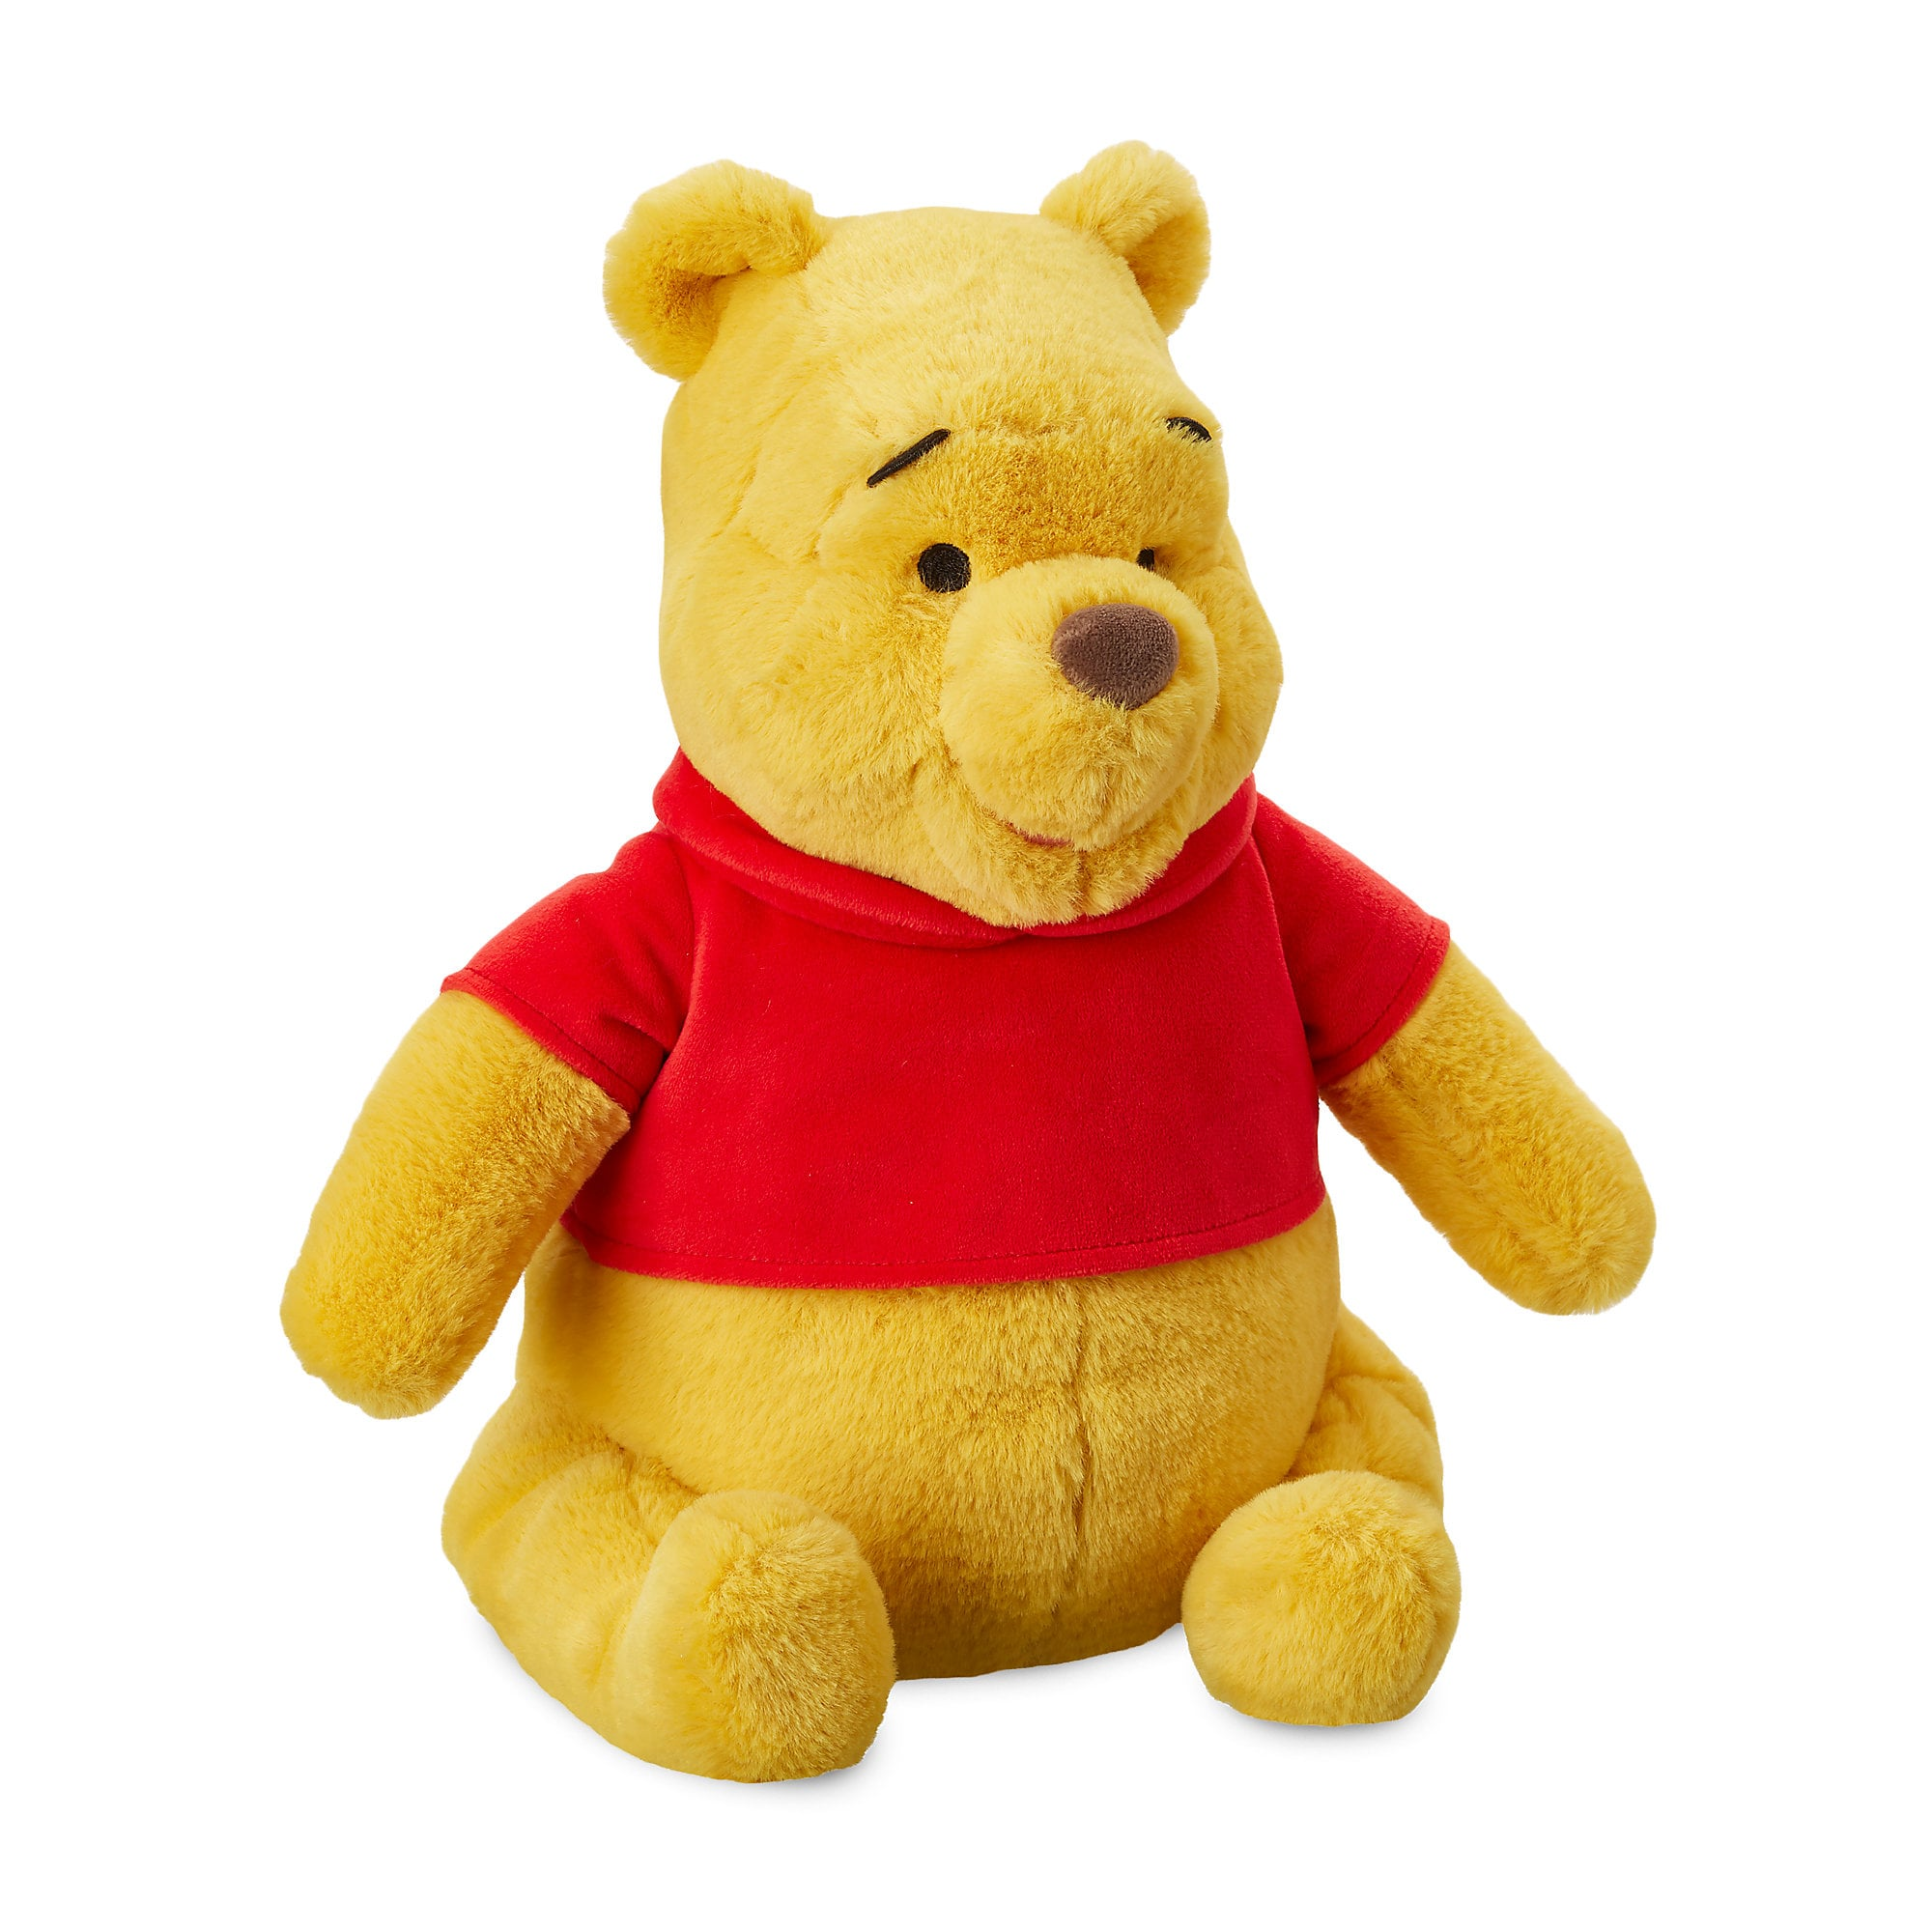 whinnie the pooh toys